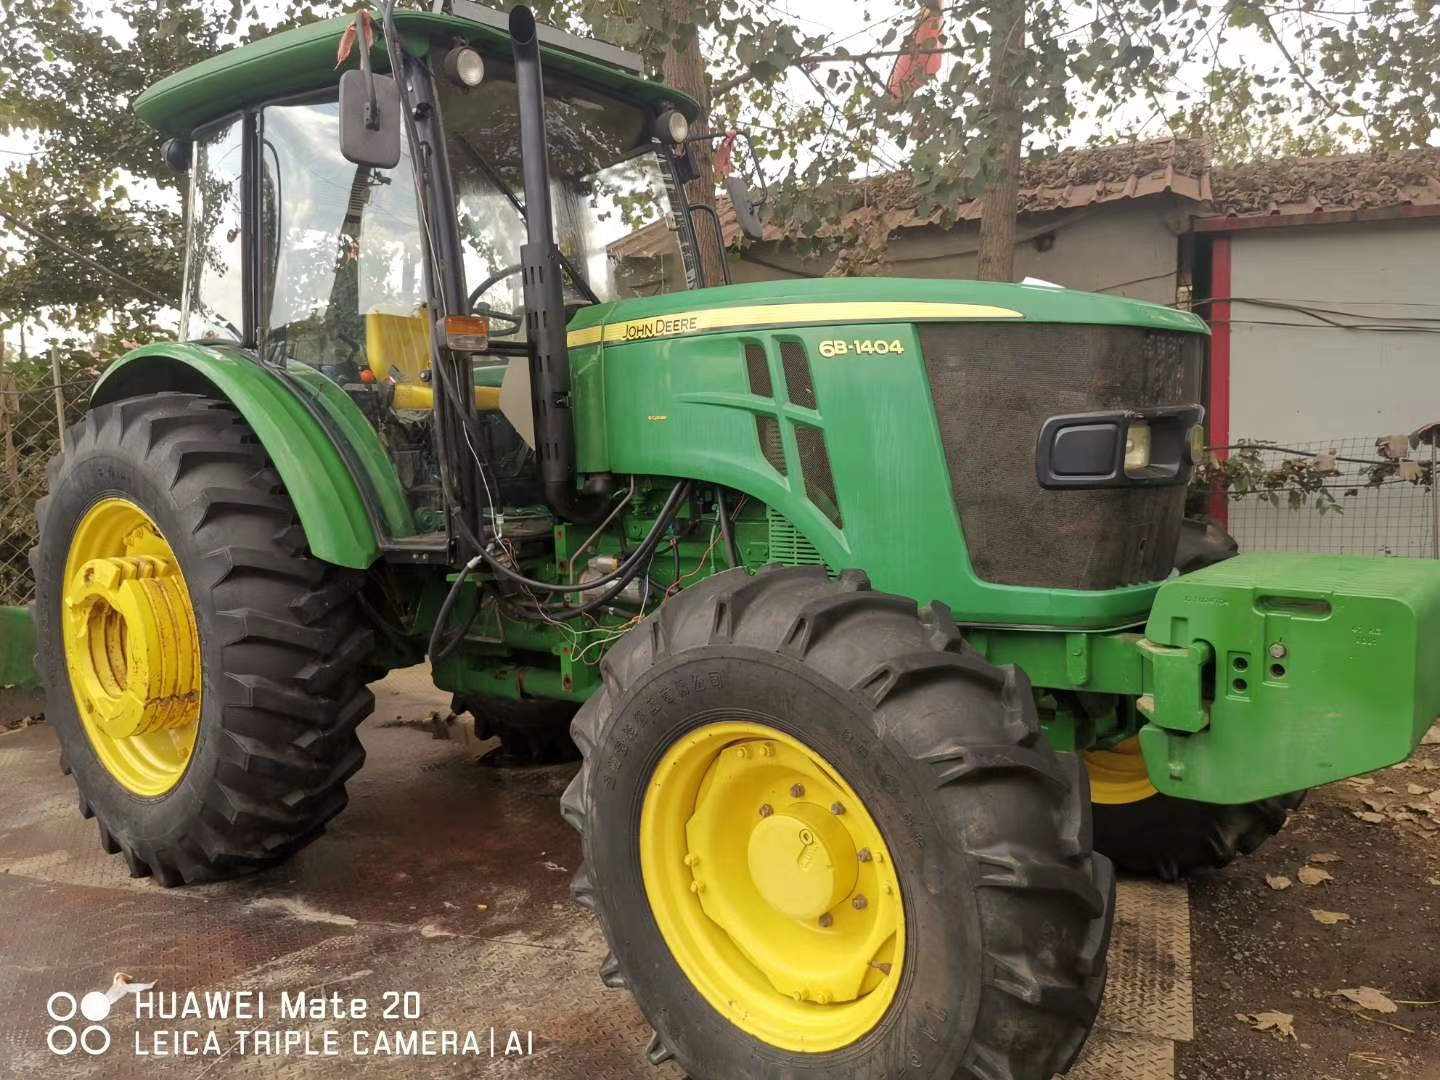 used tractor John for sale deere 5E-954